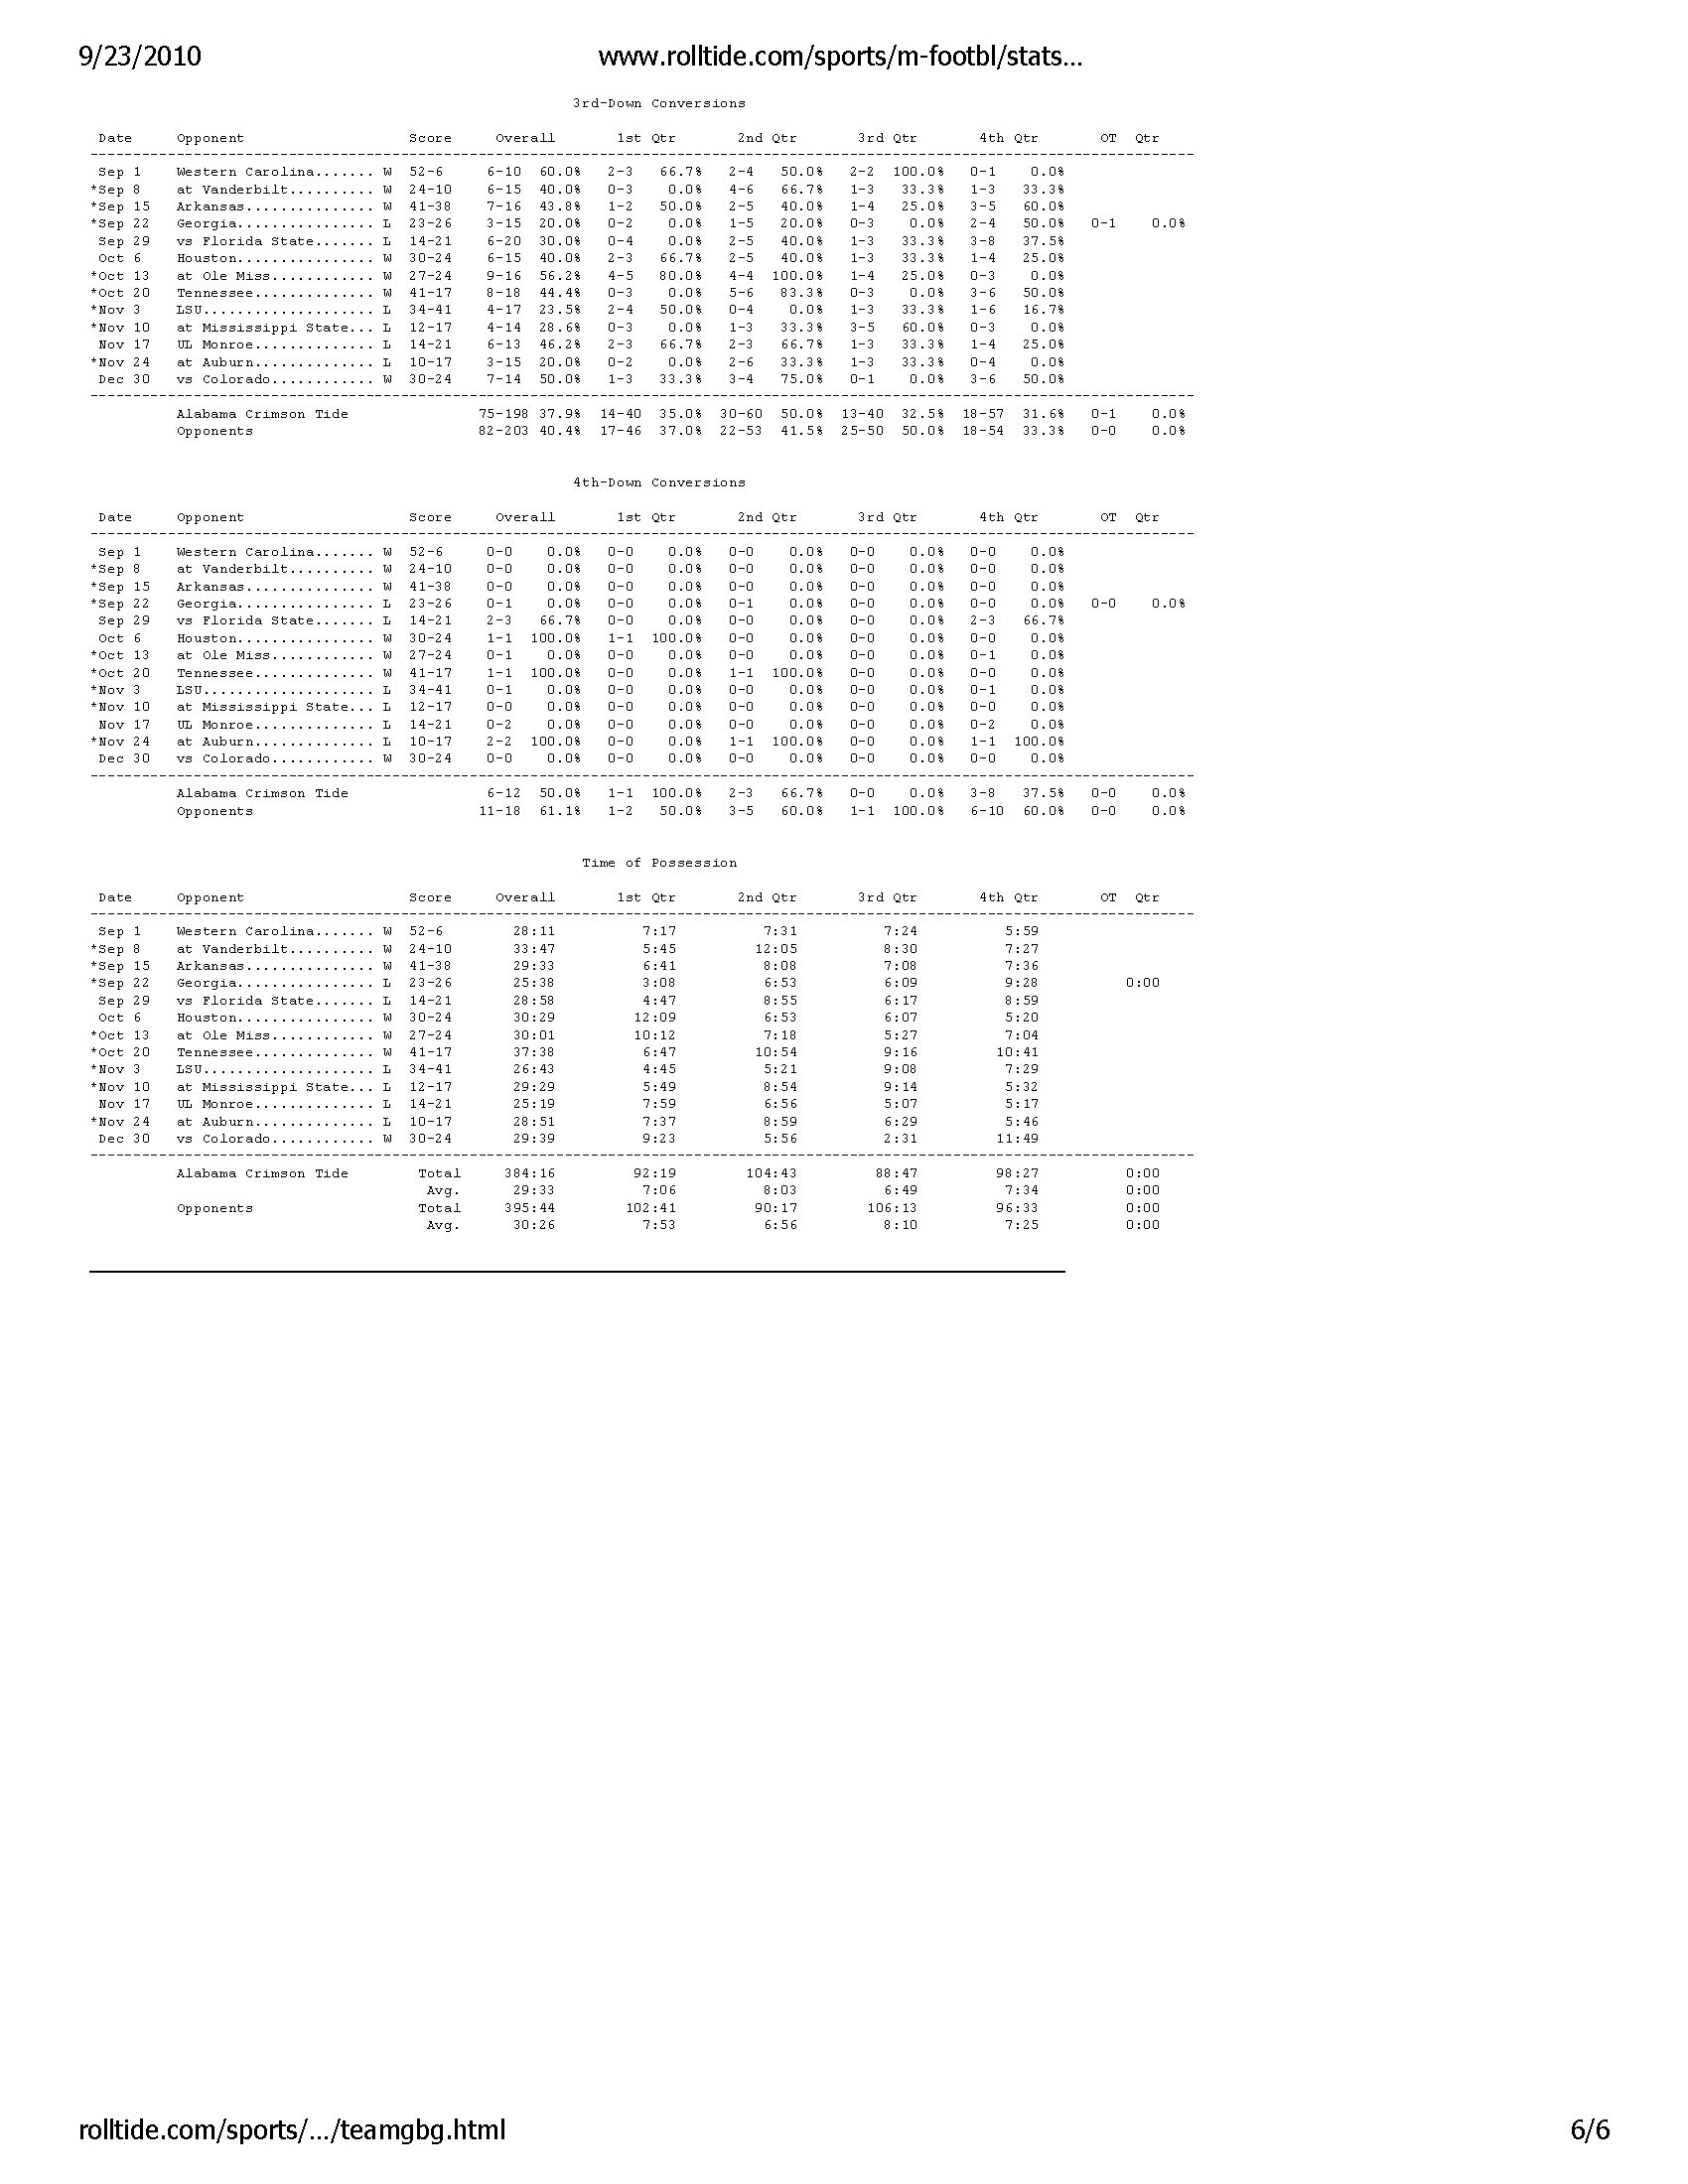 Alabama Crimson Tide -- Game by Game Statistics -- Archive 2007-08_Page_6